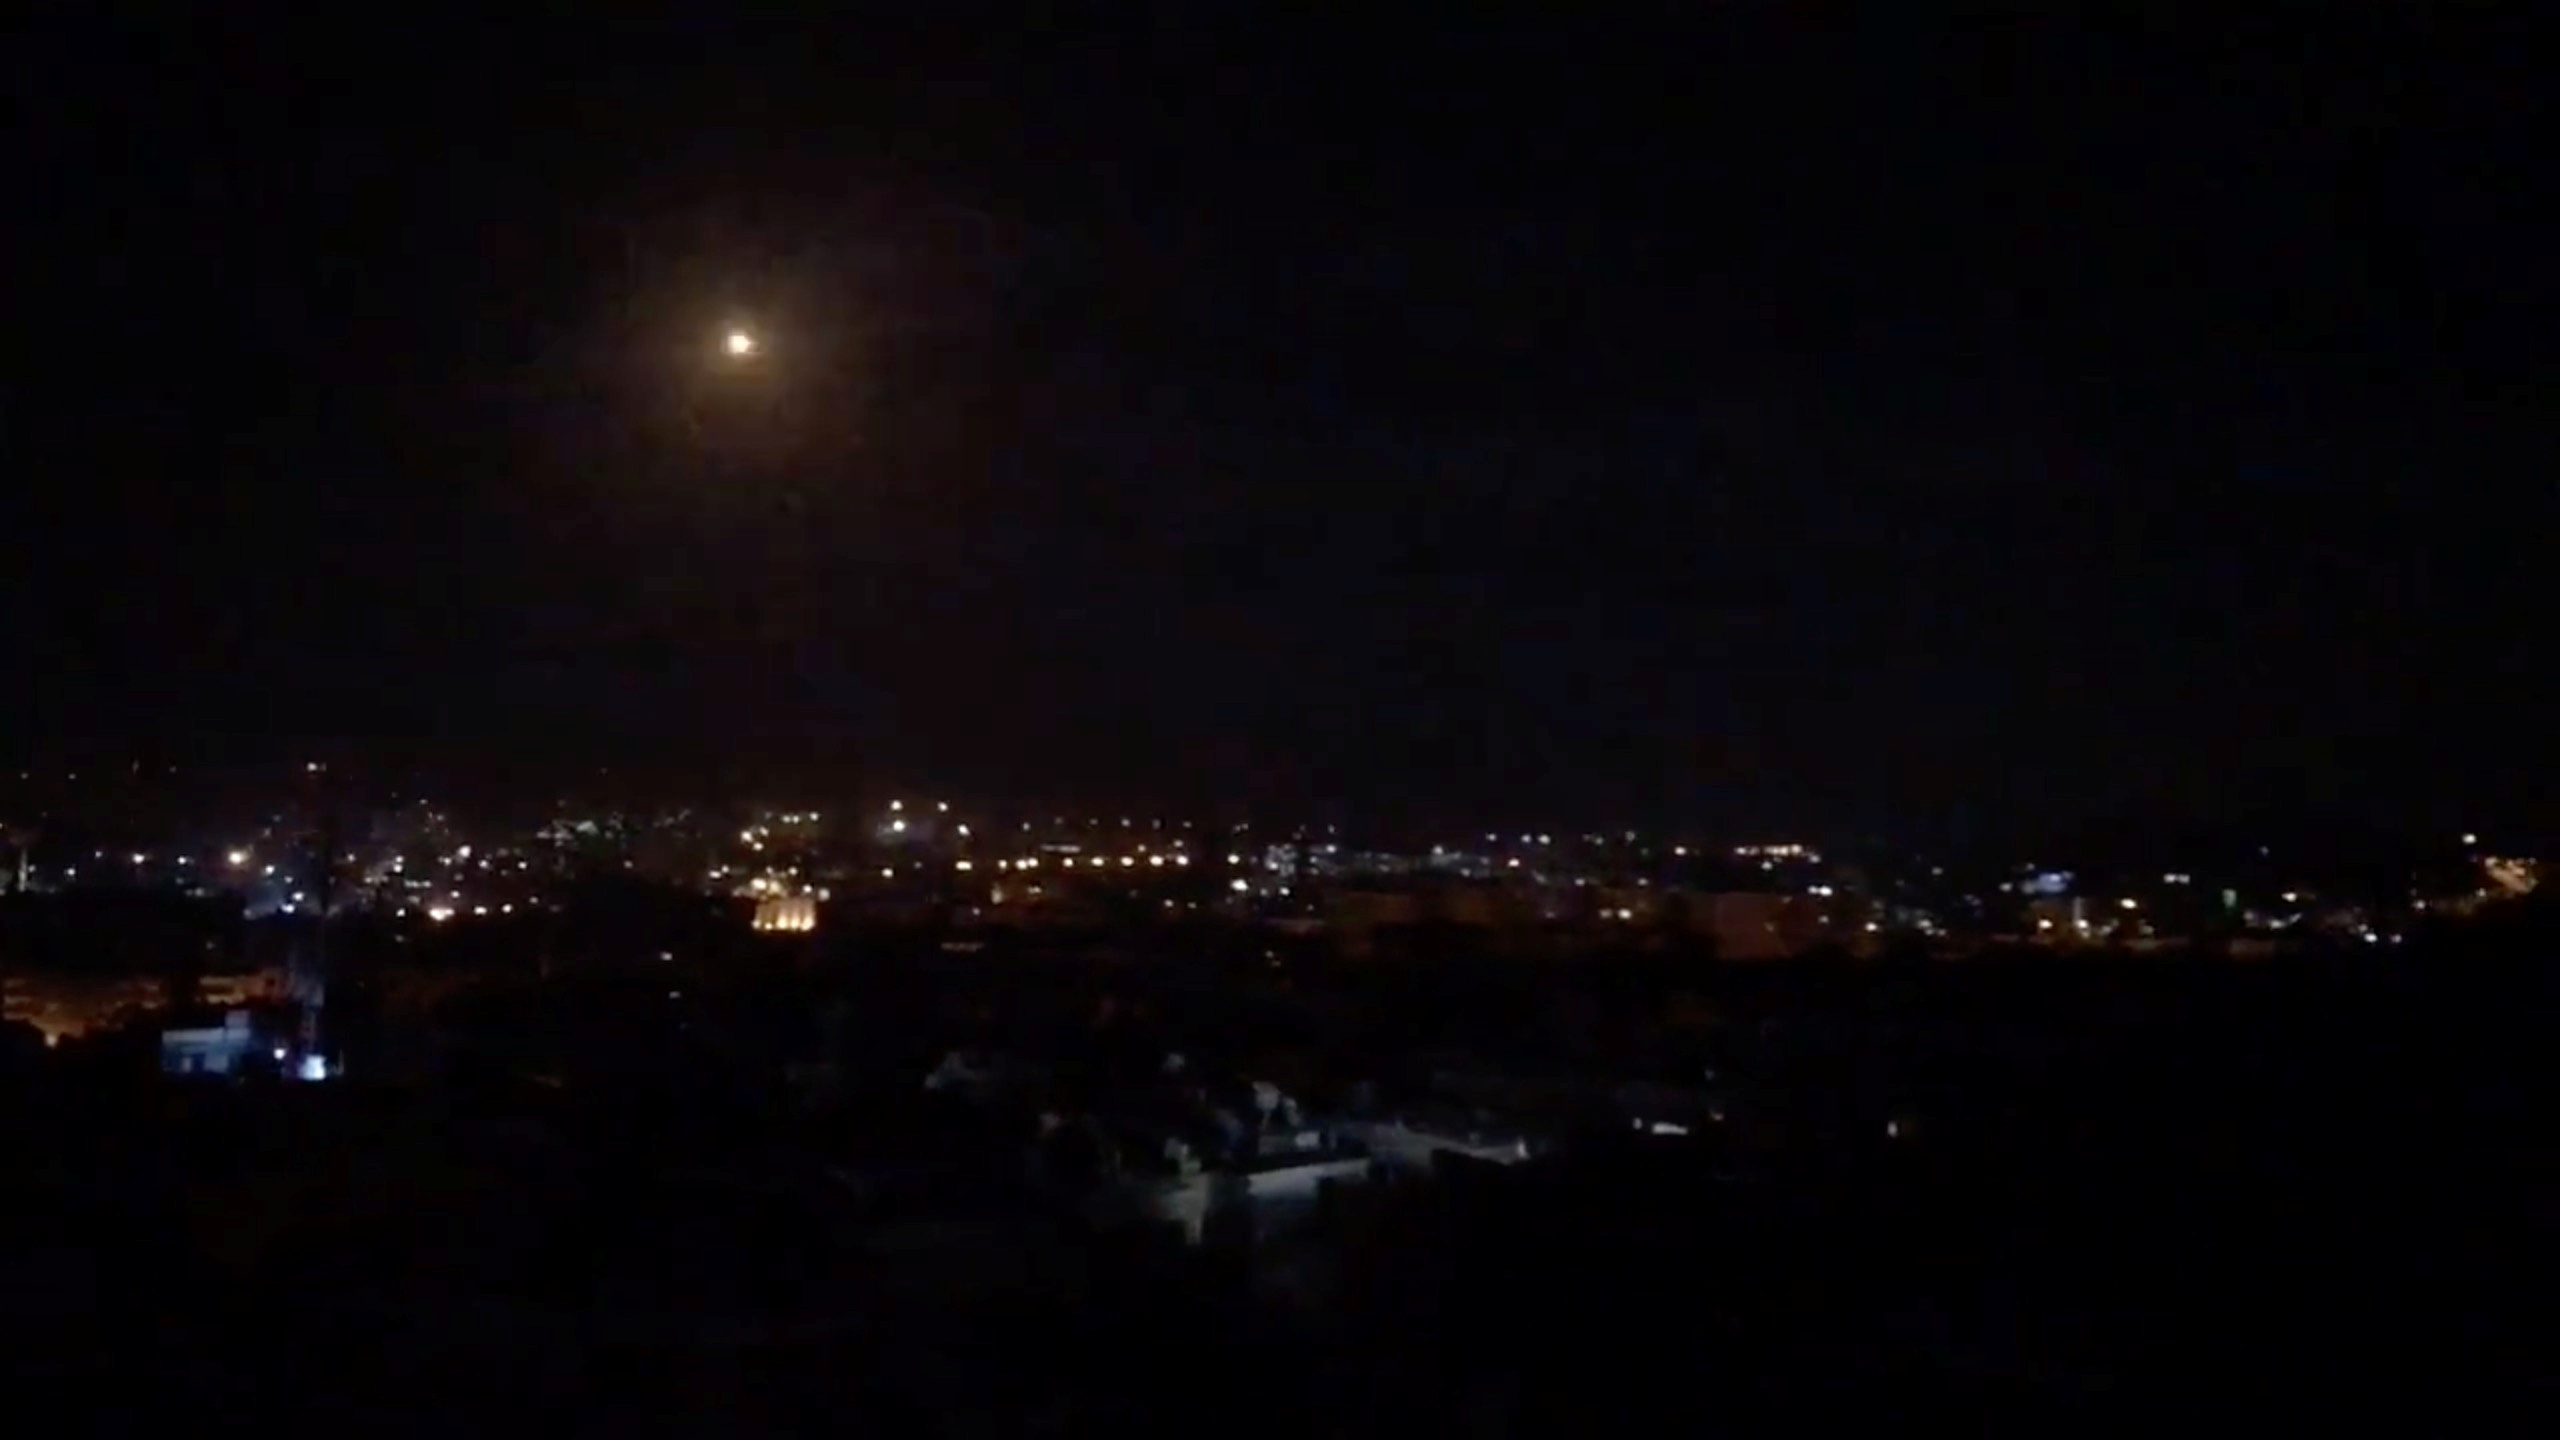 What is believed to be guided missiles are seen in the sky during what is reported to be an attack in Damascus, Syria, January 21, 2019, in this still image taken from a video obtained from social media. Facebook Diary of a Mortar Shell in Damascus/Youmiyat Qadifat Hawun fi Damashq/via REUTERS